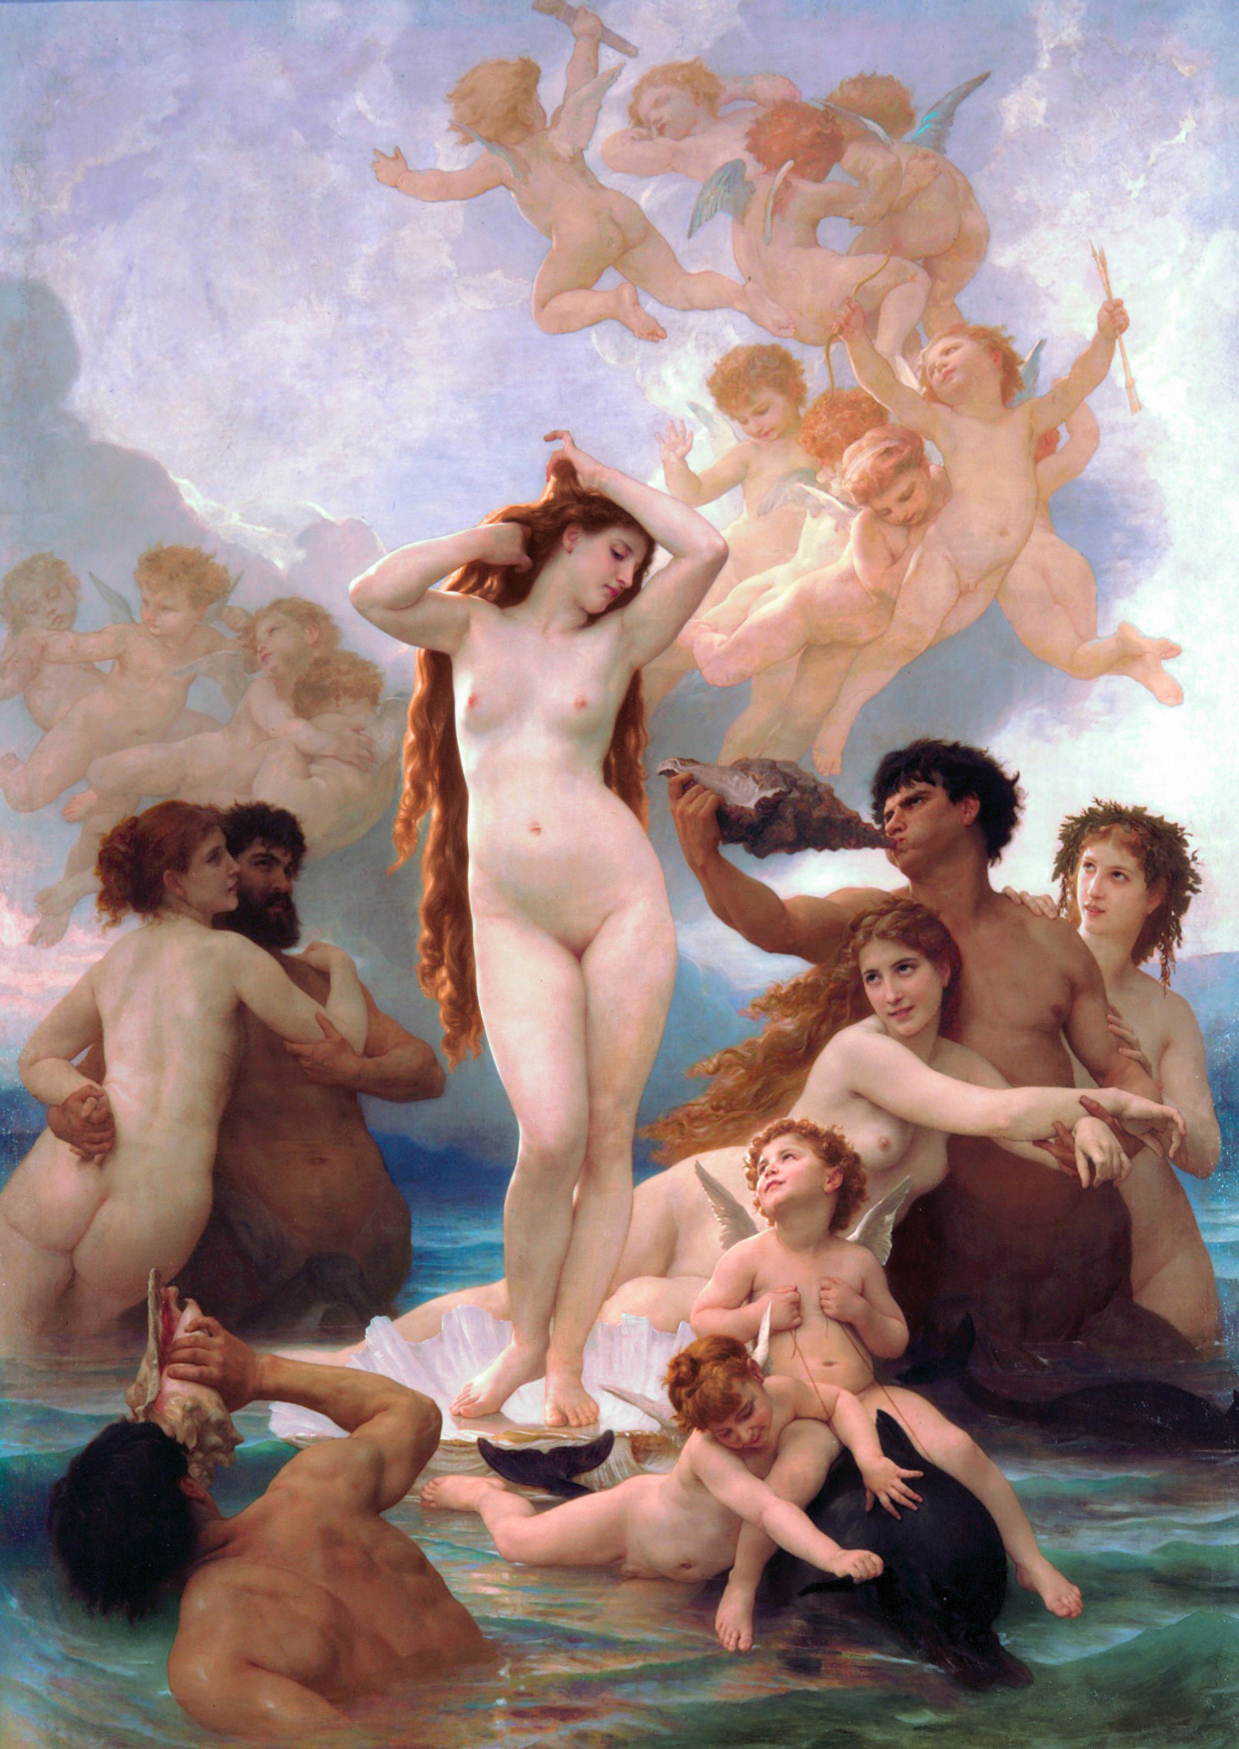 Was the Goddess Aphrodite Sexy?